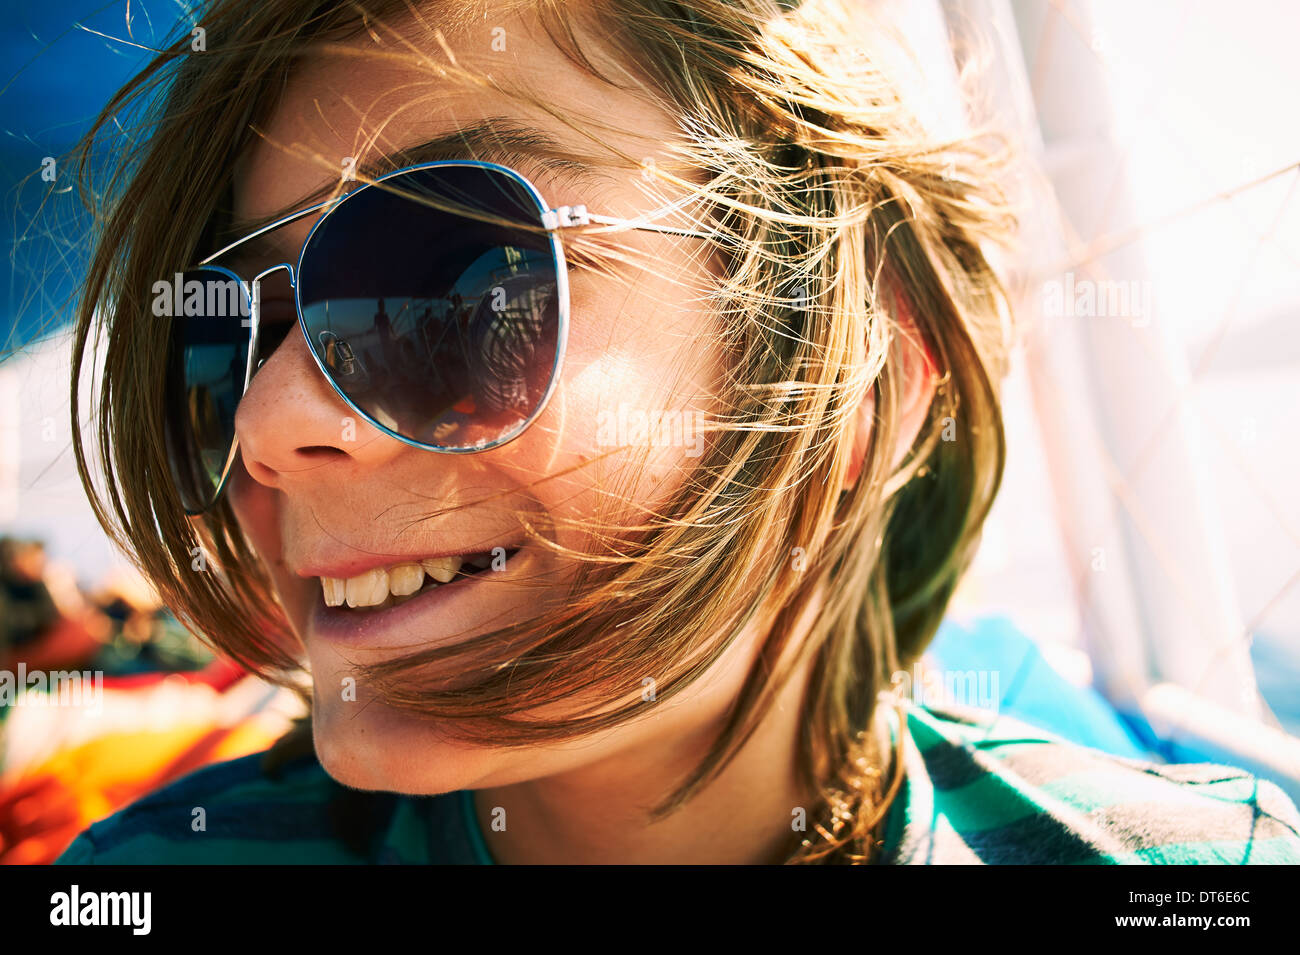 Close up candid portrait of boy in sunglasses - Stock Image